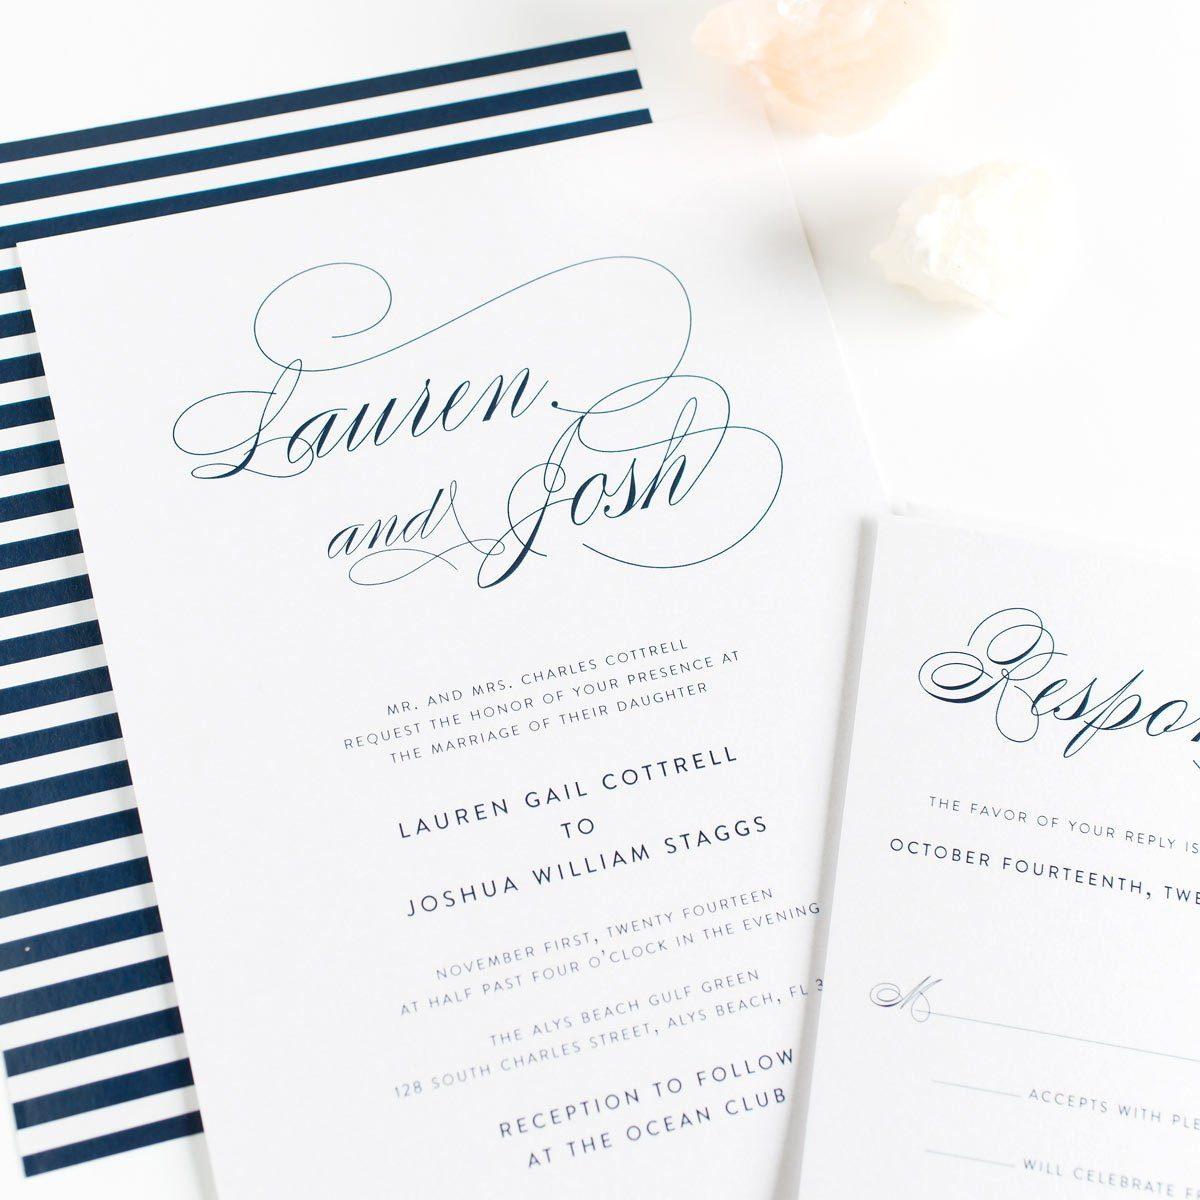 Script Elegance Wedding Invitation in Navy Nlue